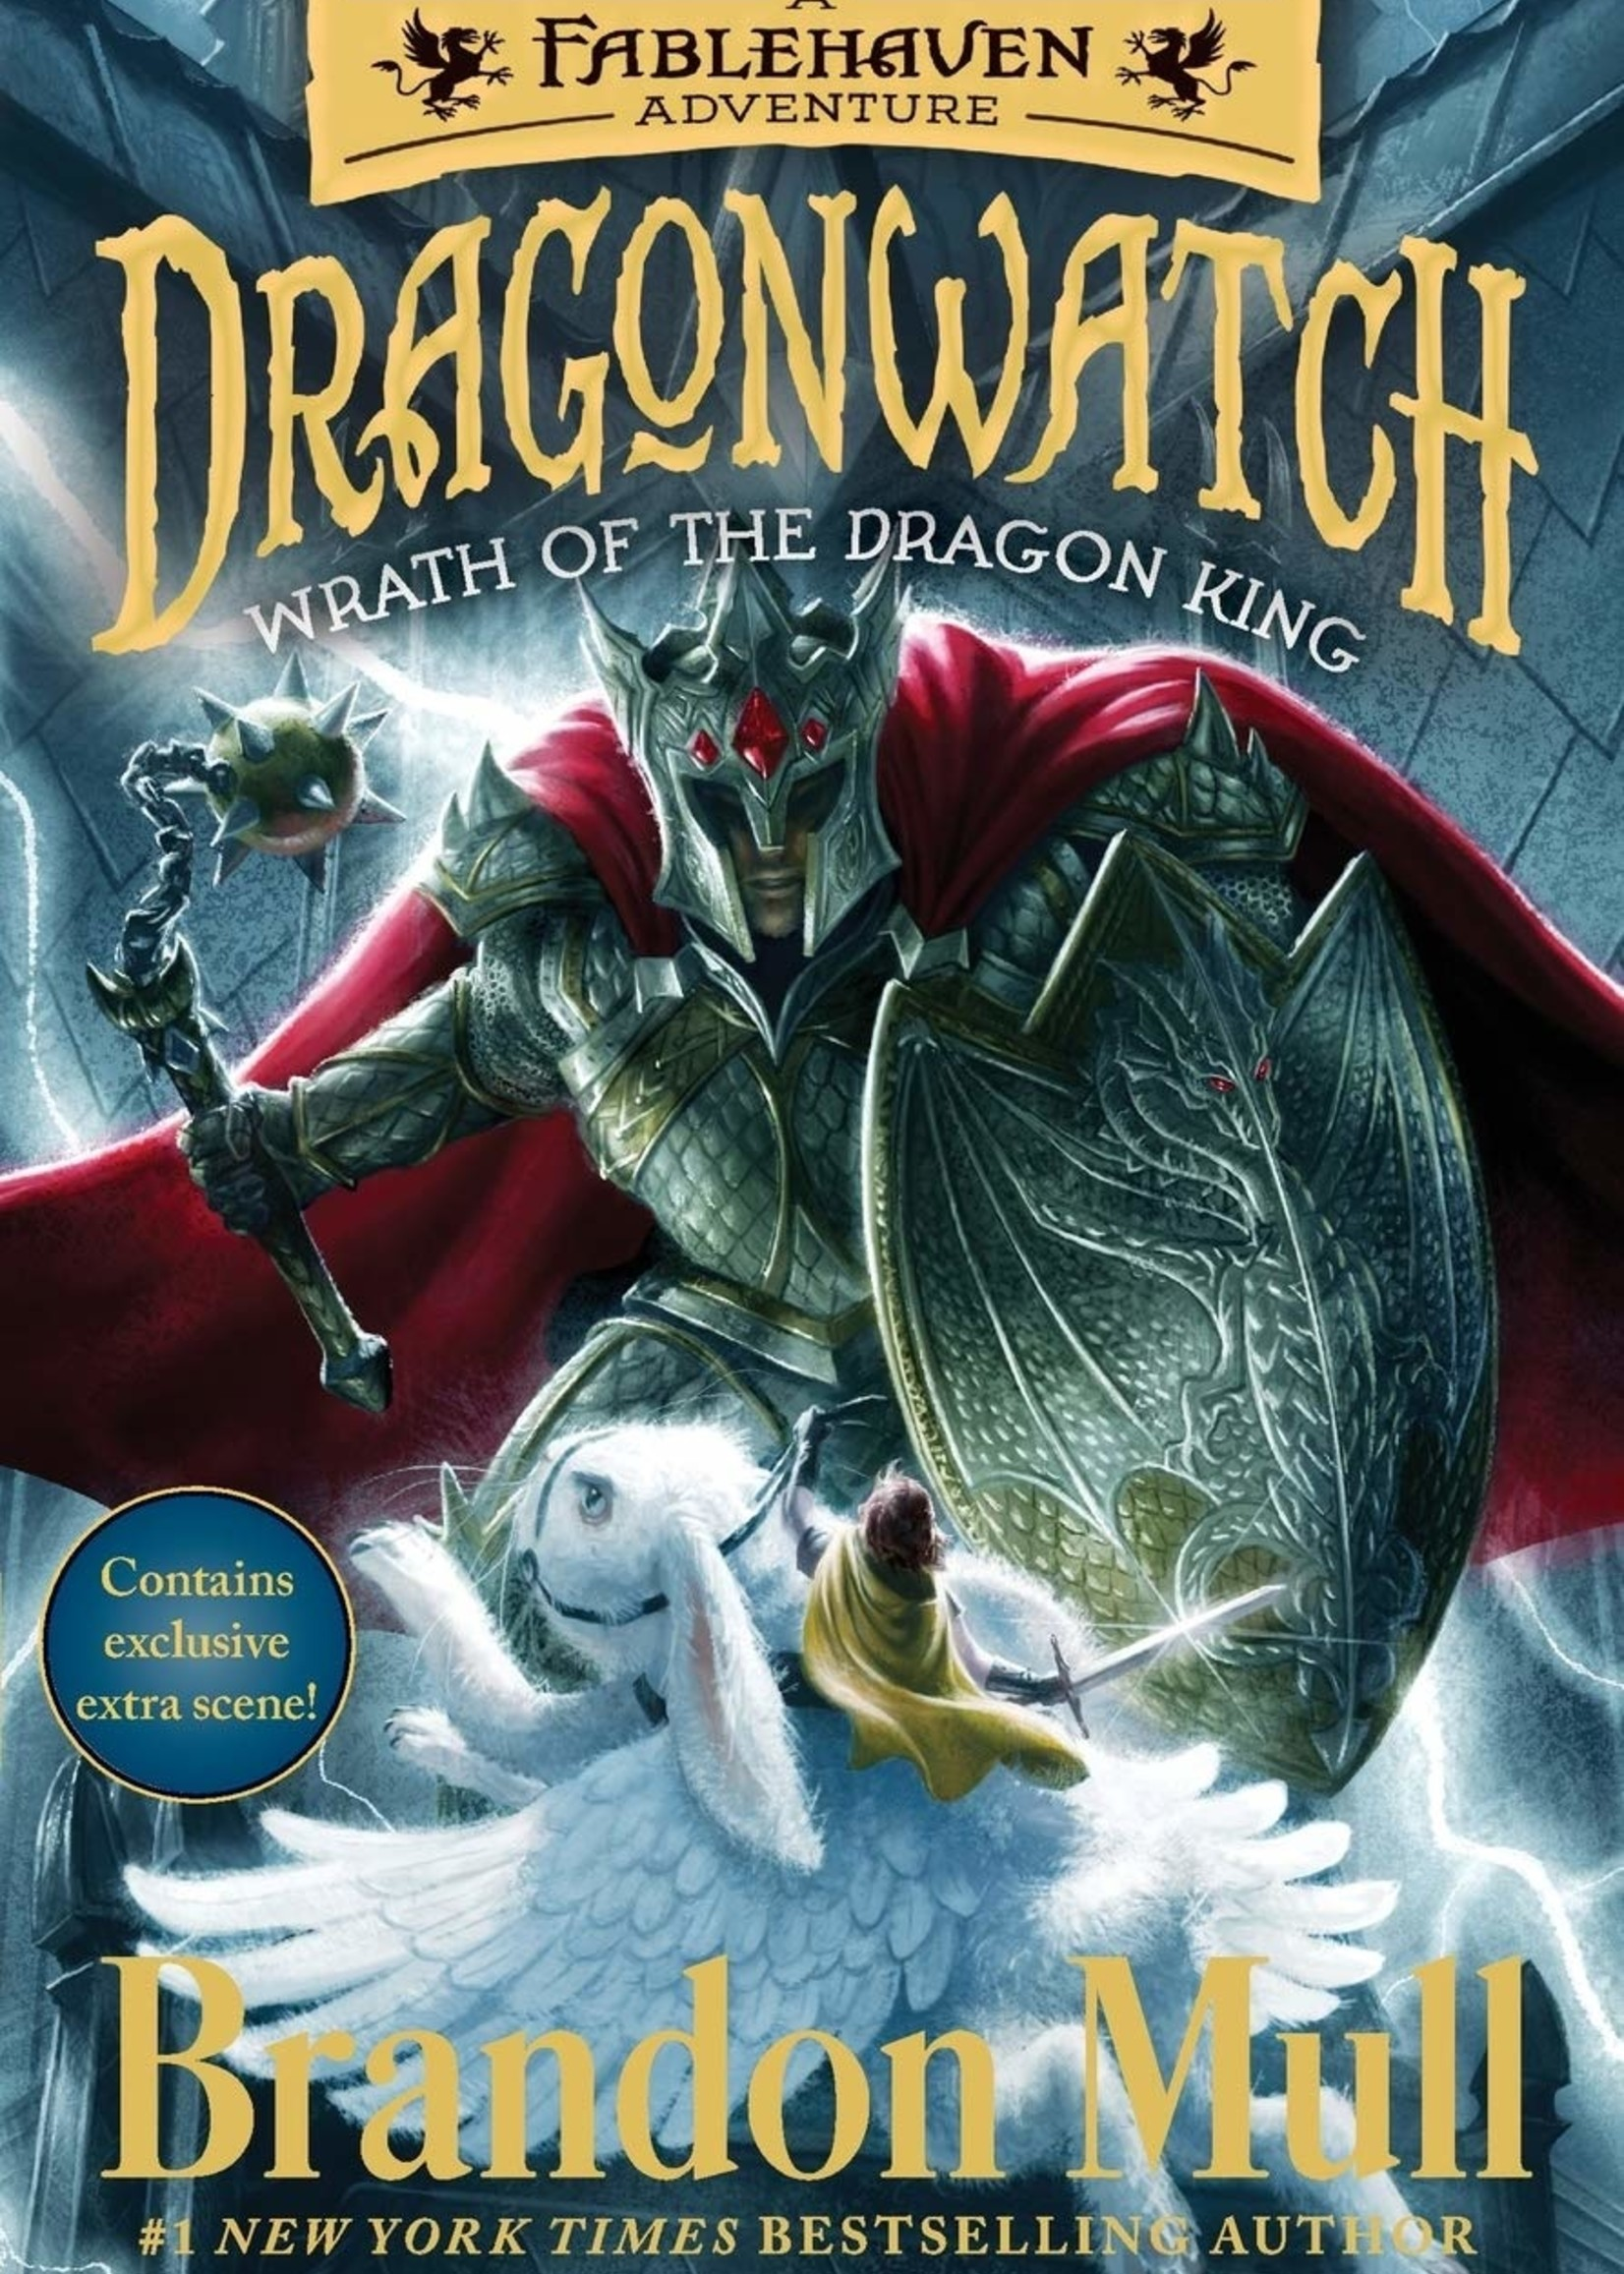 Dragonwatch #02, Wrath of the Dragon King: A Fablehaven Adventure - Paperback